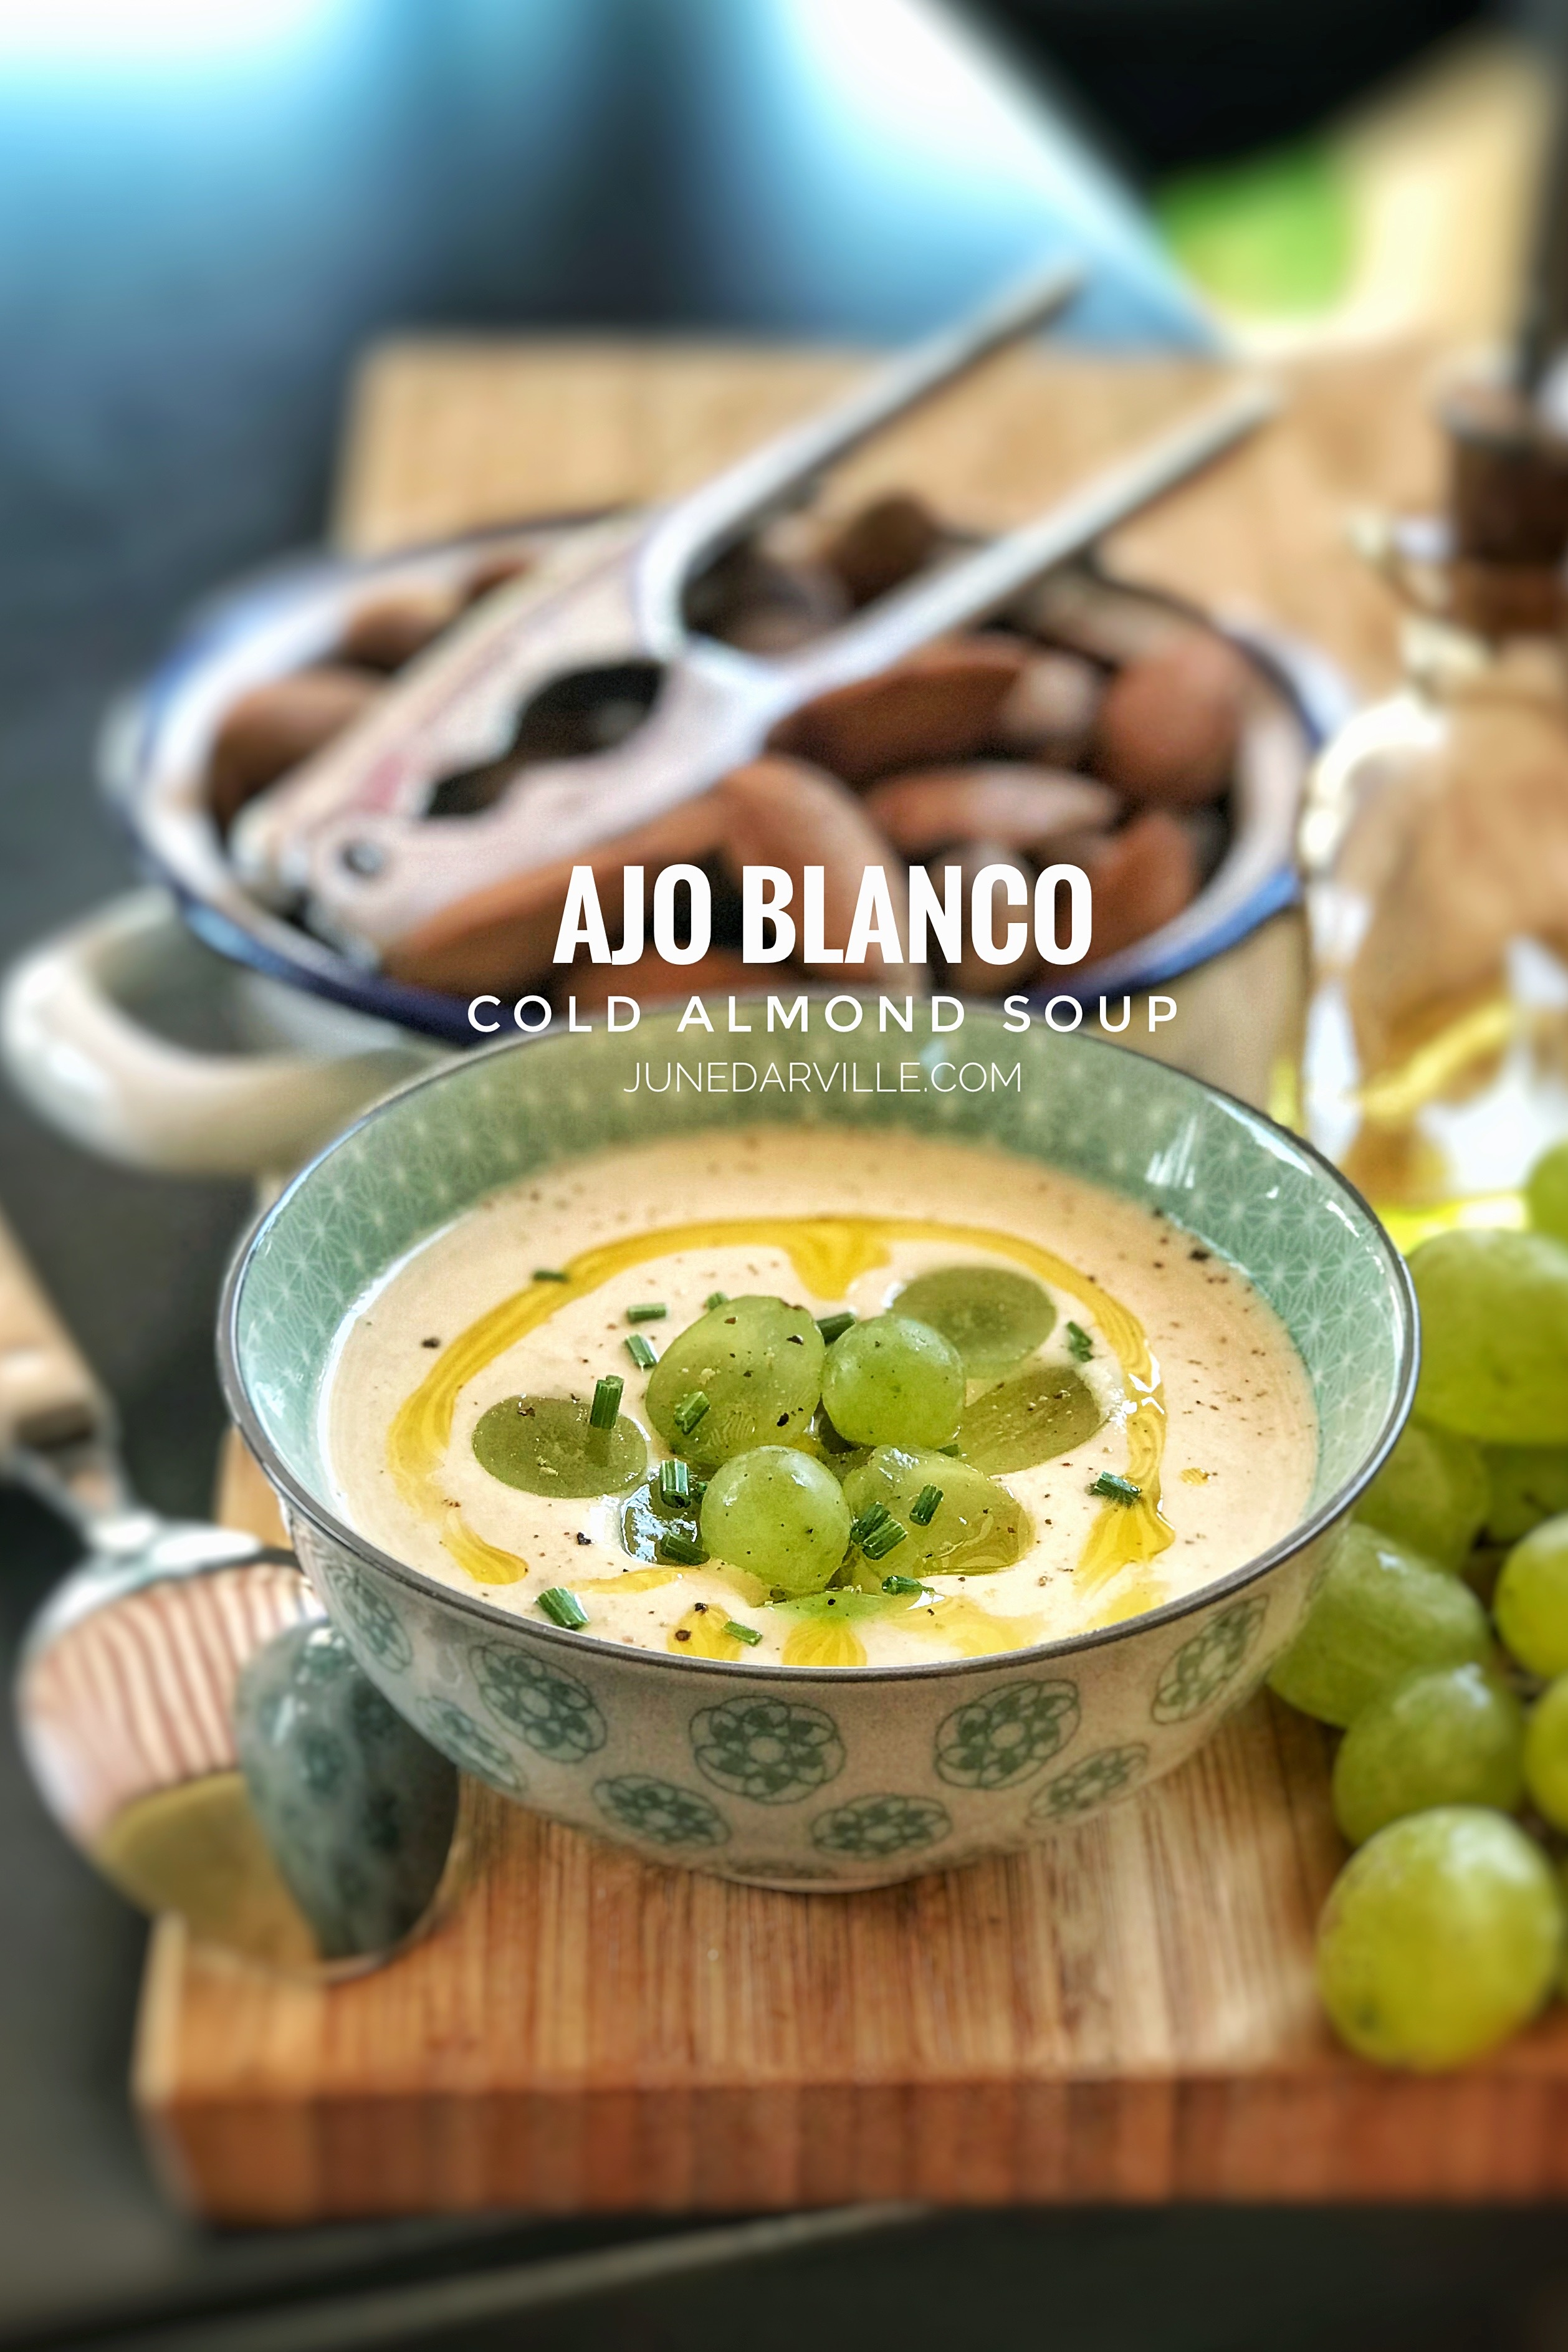 A creamy Spanish cold almond soup with sweet grapes that contains bread, garlic and almonds... also known as 'ajo blanco'.